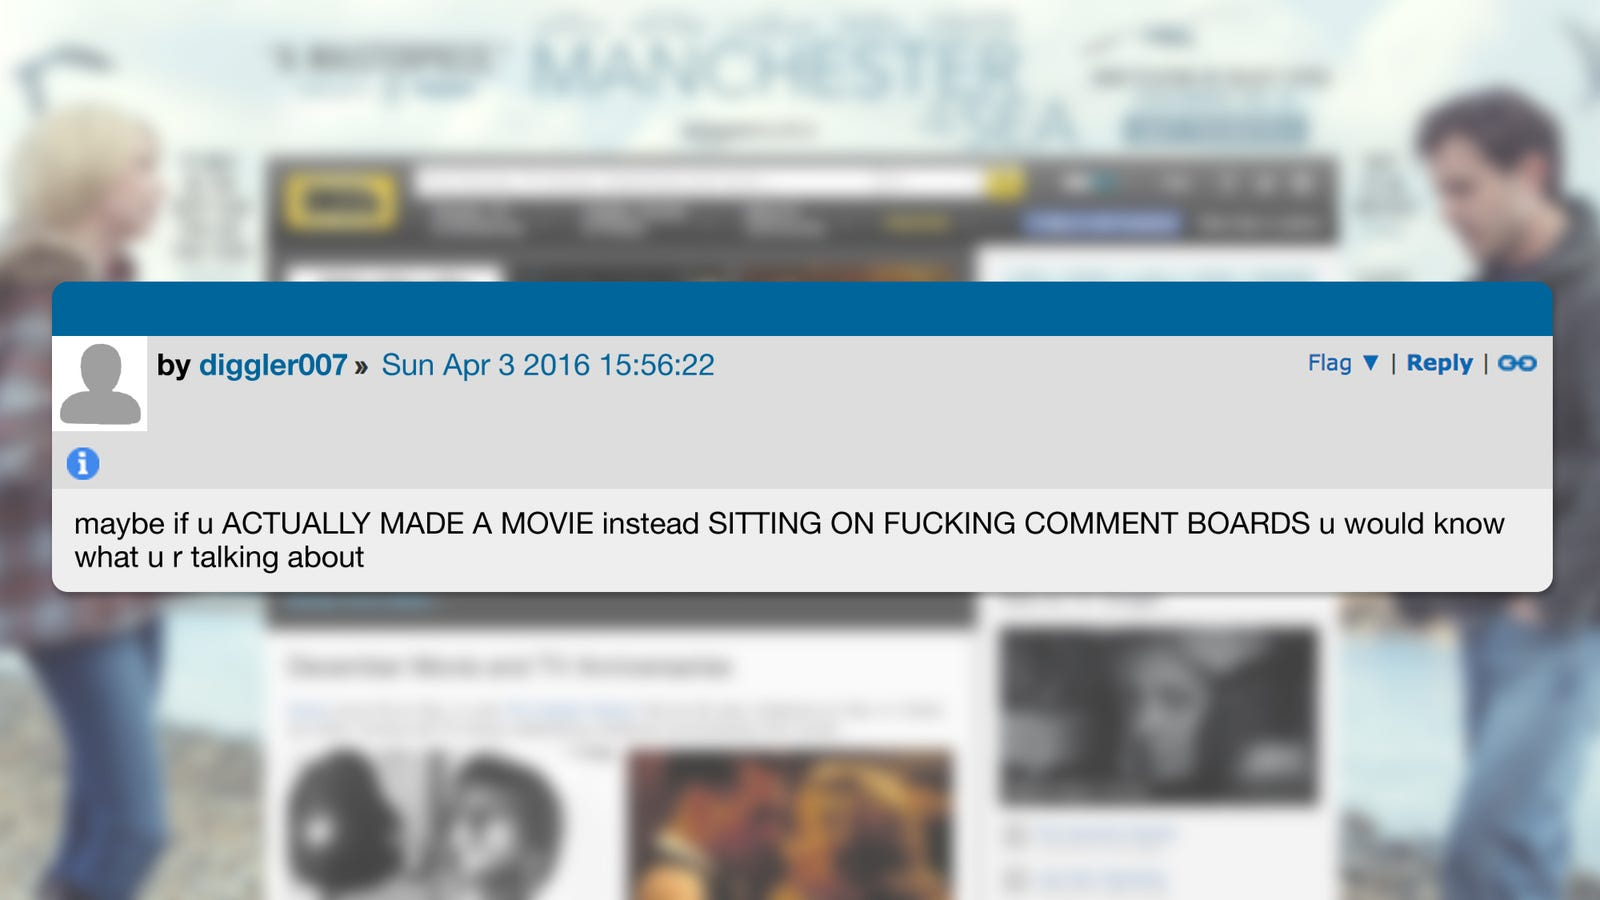 "IMDb, Whether Ocean's Twelve Is A Good Movie: Sure, it may not be the best movie of all time, but it certainly wasn't the ""two hours of NO PLOT"" that BMXfuego said it was. Not sure if he was a troll or what, but after about 18 or 20 comments back and forth, it didn't even matter, because we clearly showed that George Clooney's performance as Danny Ocean was even better this time around, and that BMXfuego was a total dumbfuck for saying it wasn't."